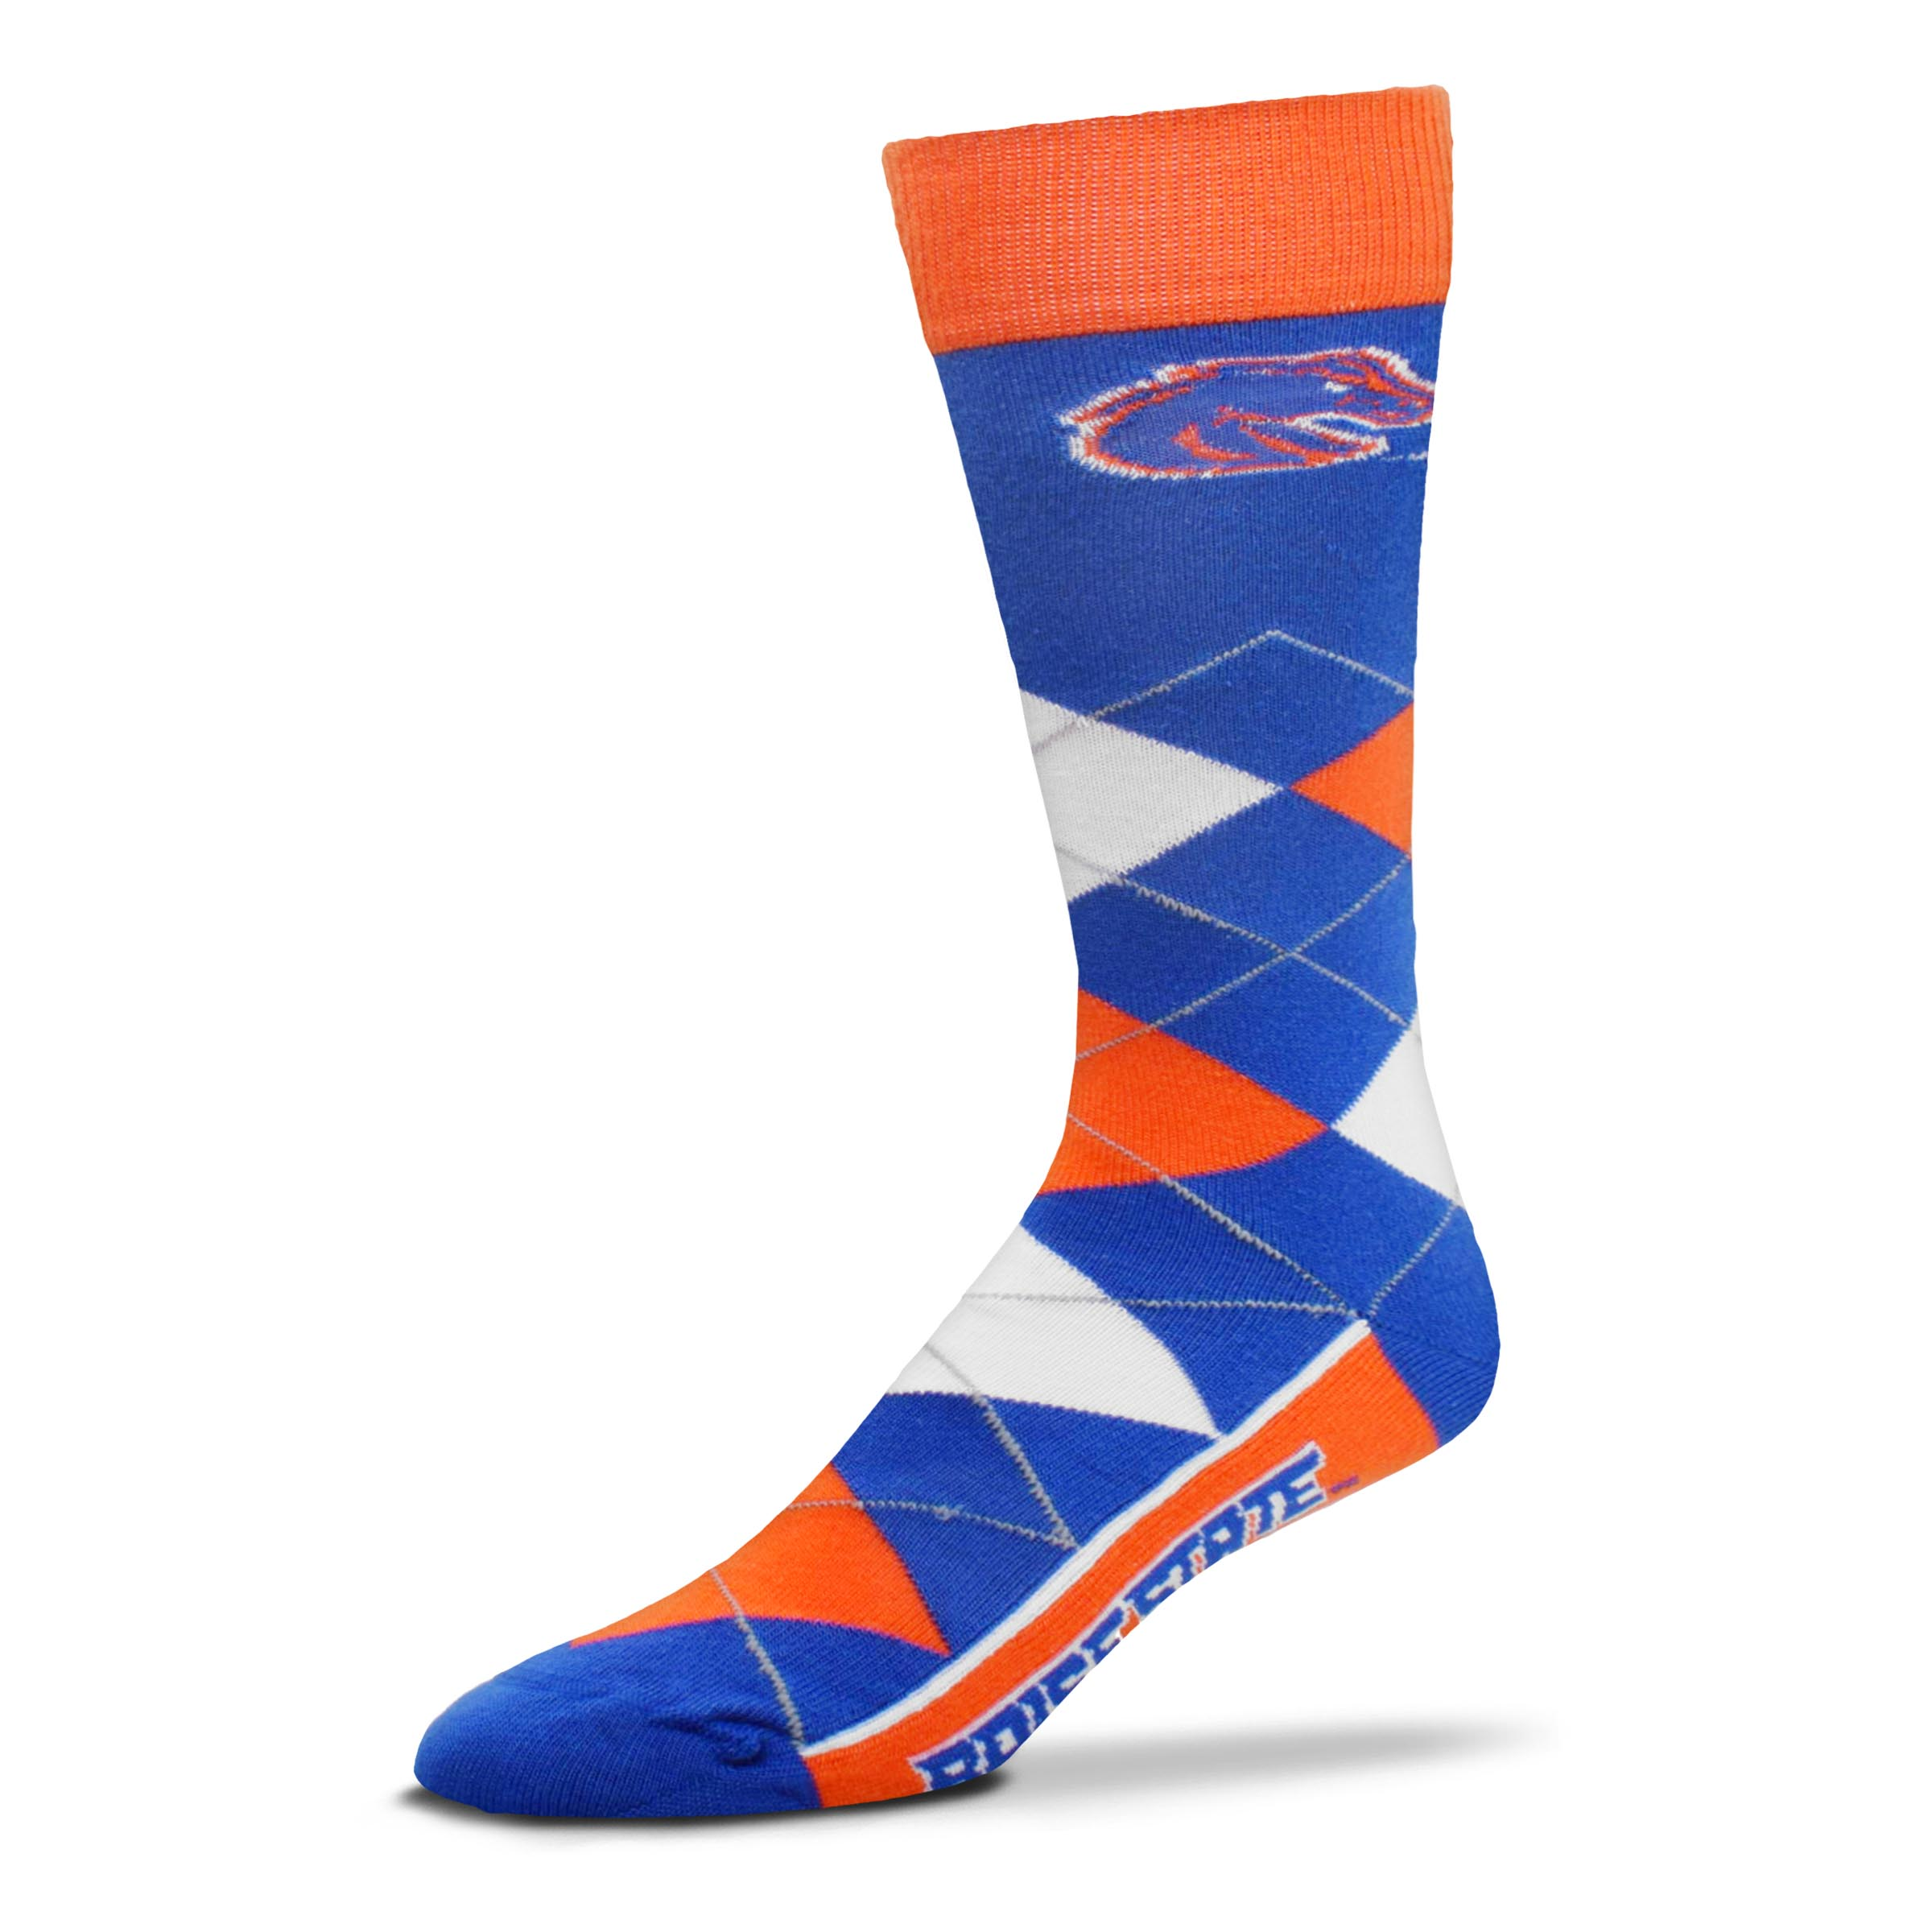 Boise State Broncos - Argyle Lineup MAIN